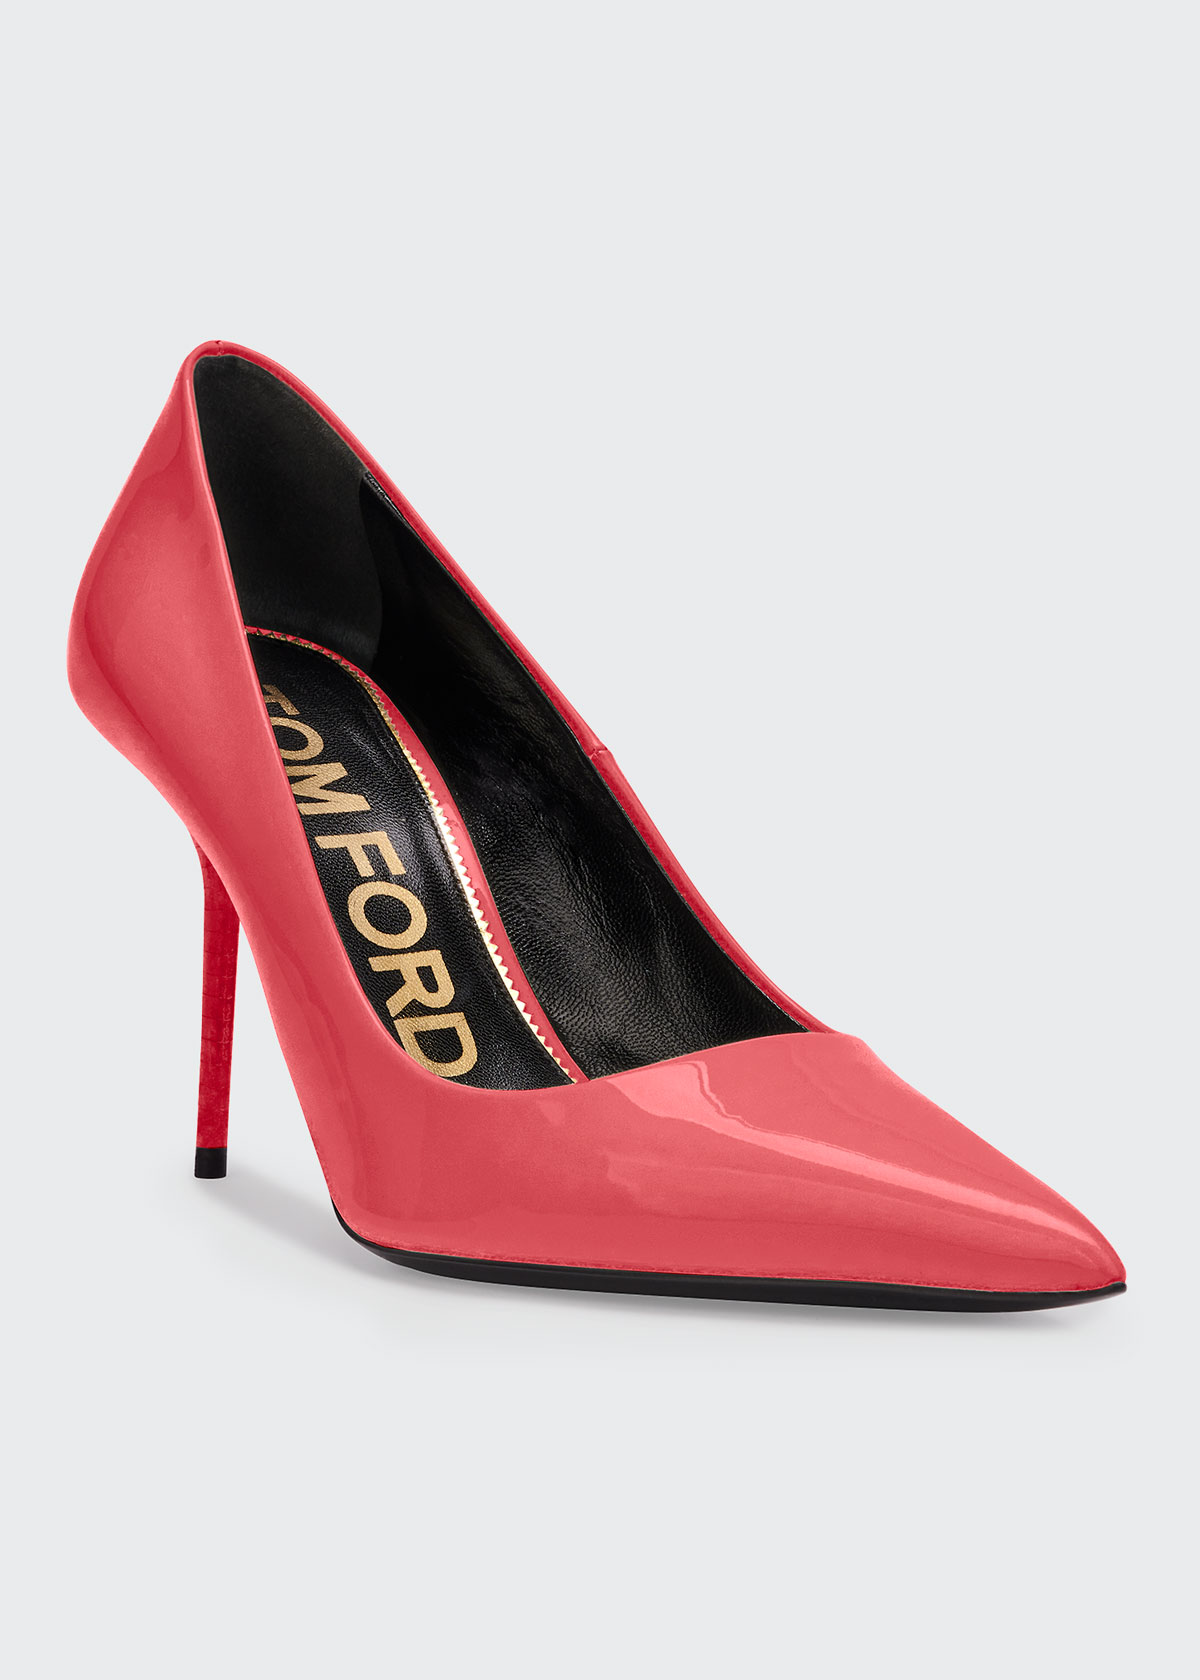 Tom Ford Patent Leather Pointed Pumps In Bright Red